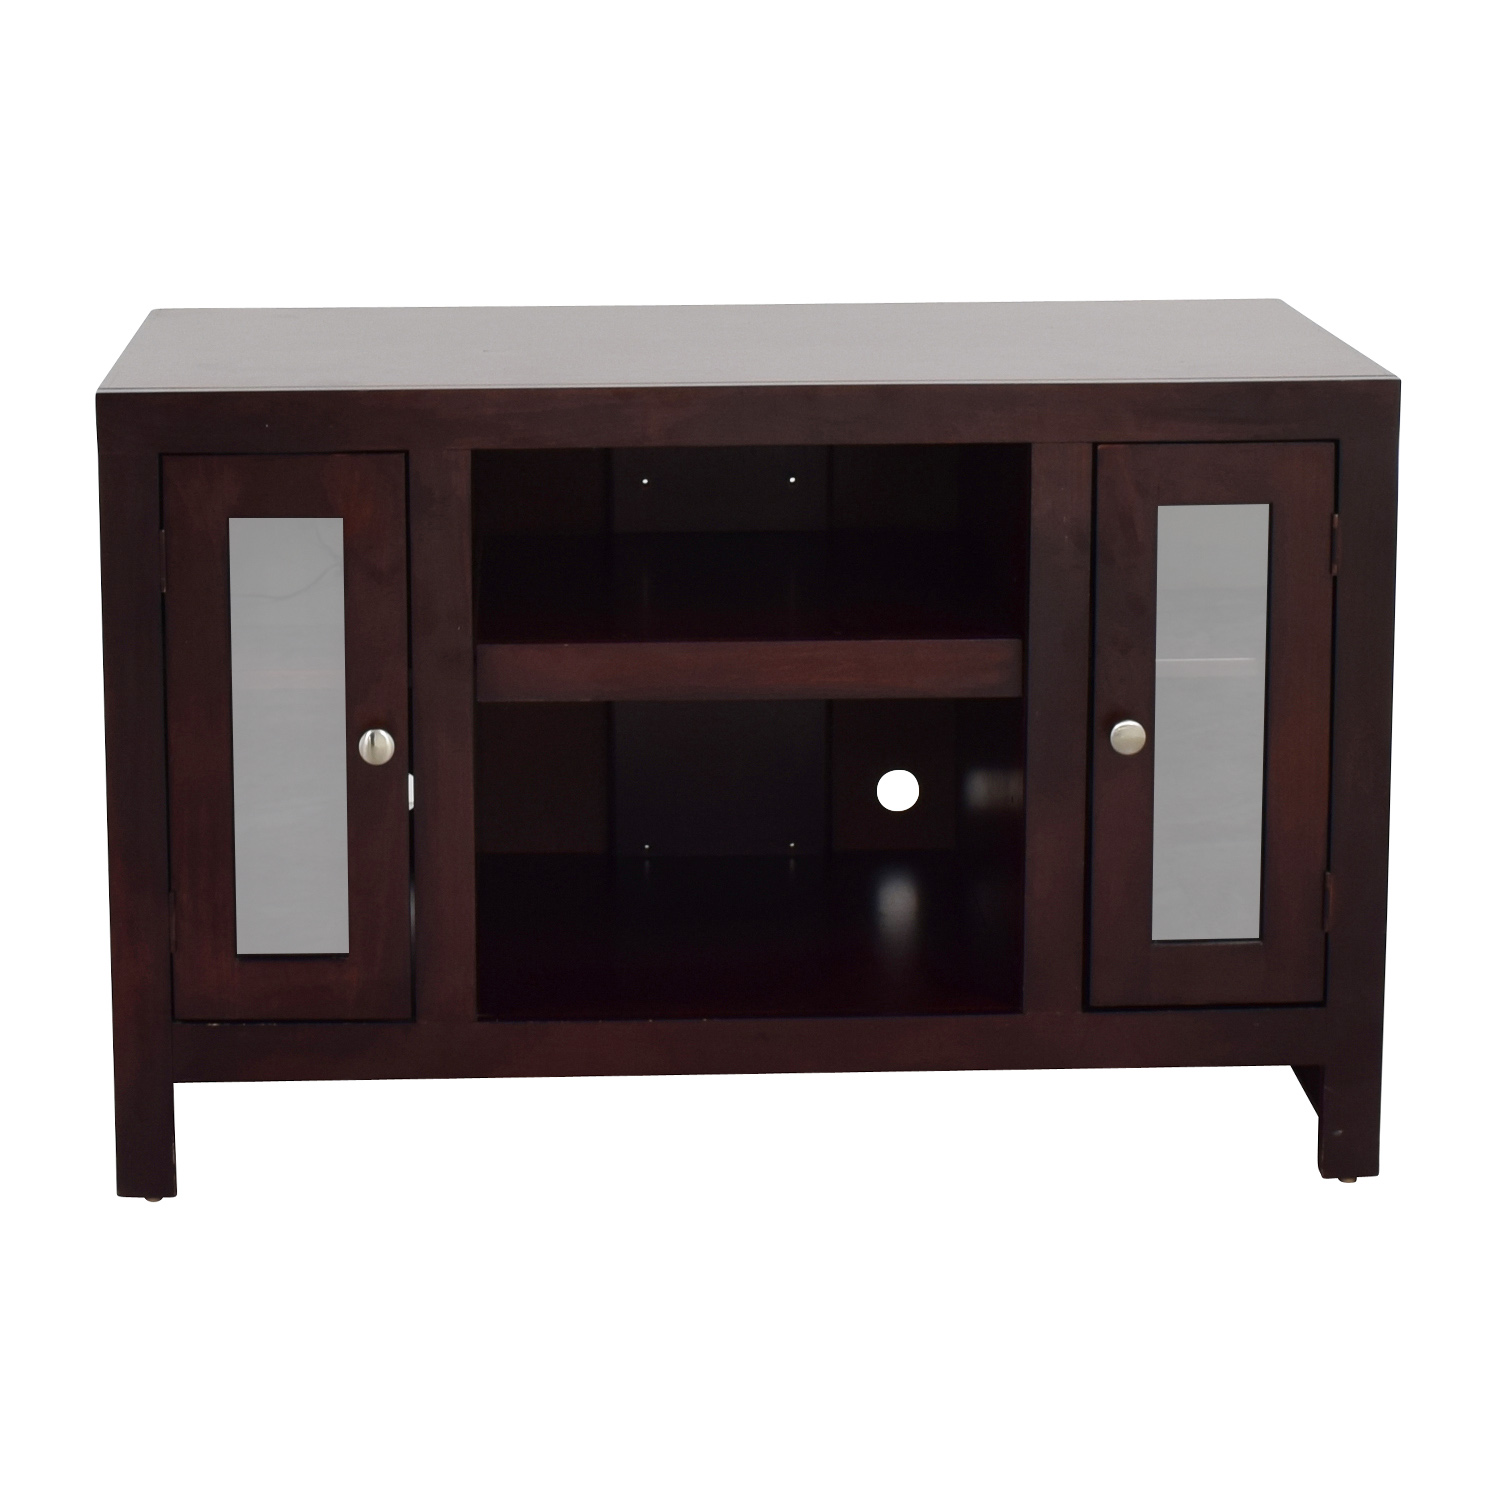 Golden Oak Golden Oak Del Mar Cherry Wood TV Console price